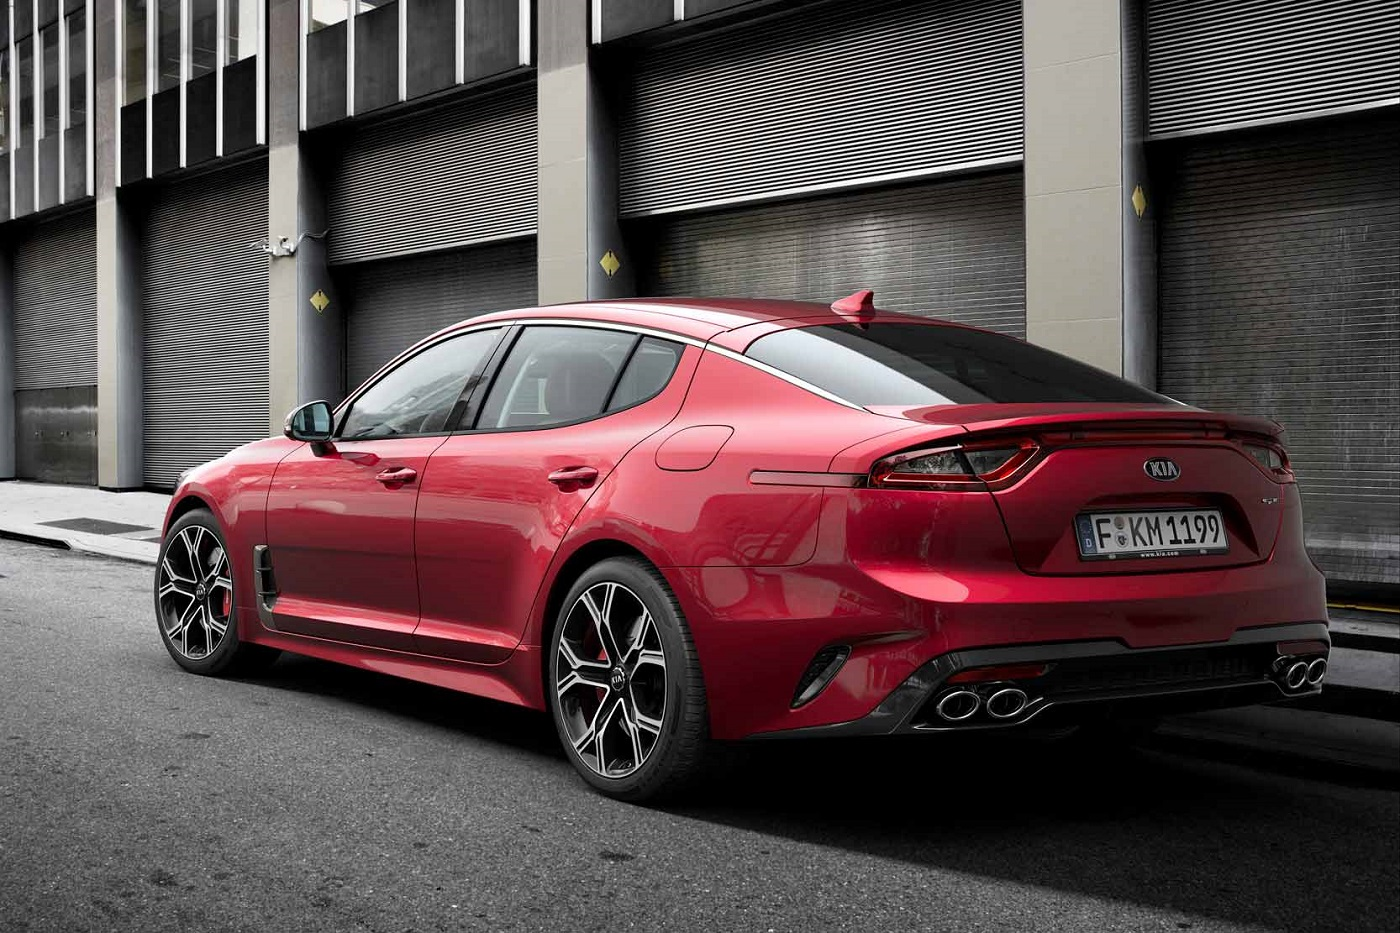 Kia_Stinger-HD